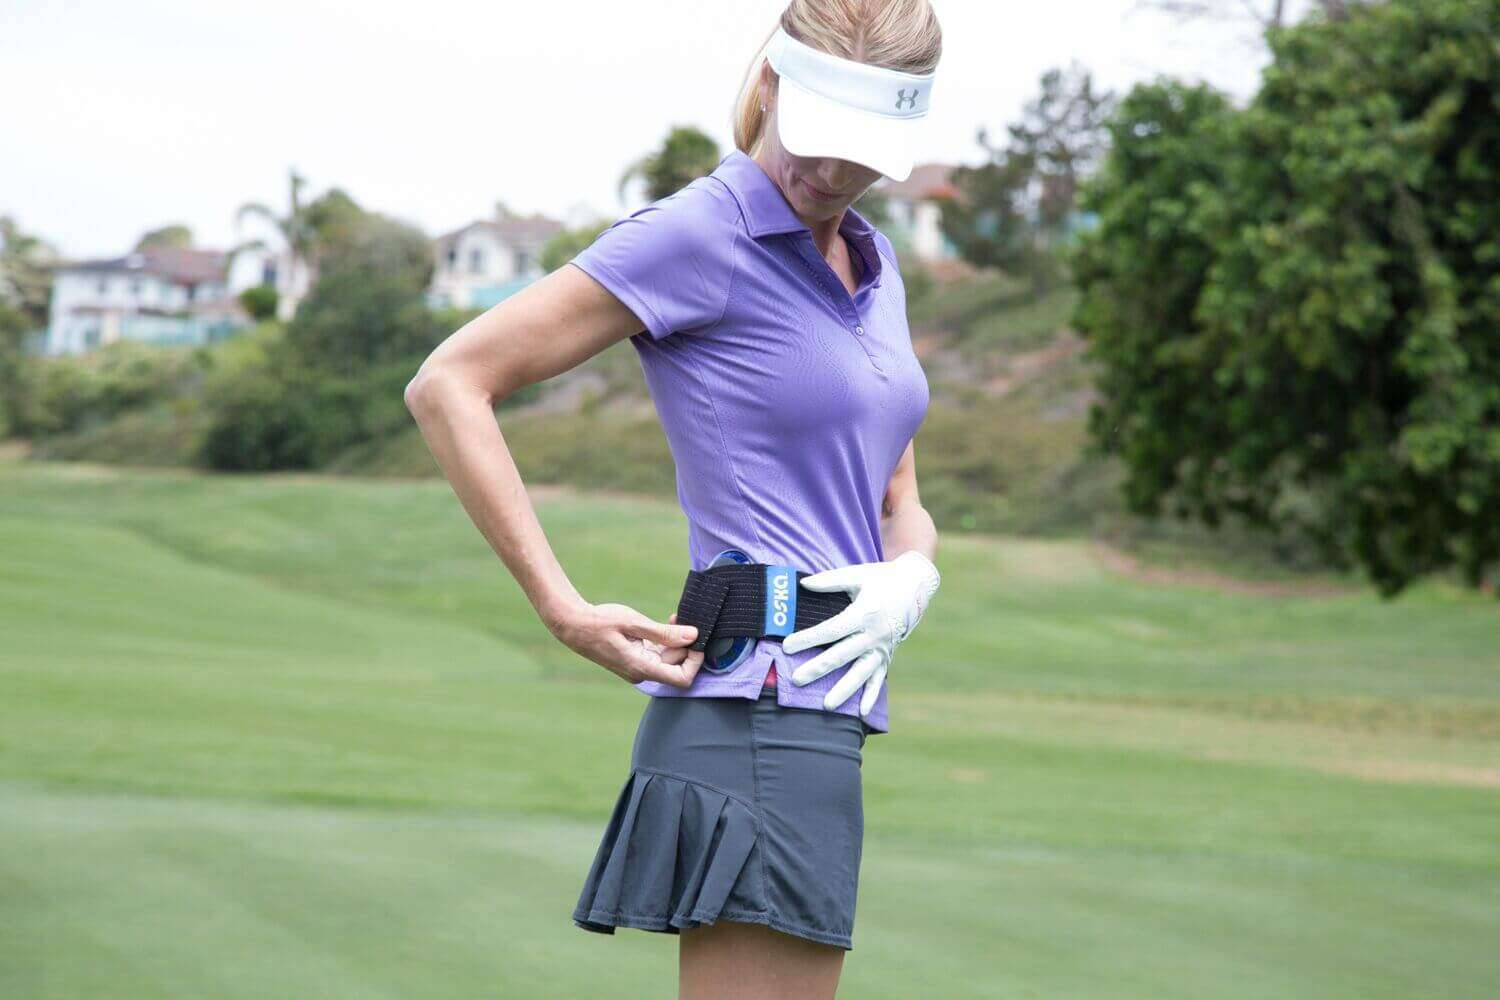 Golfer attaching the Oska Pulse while on the golf course.